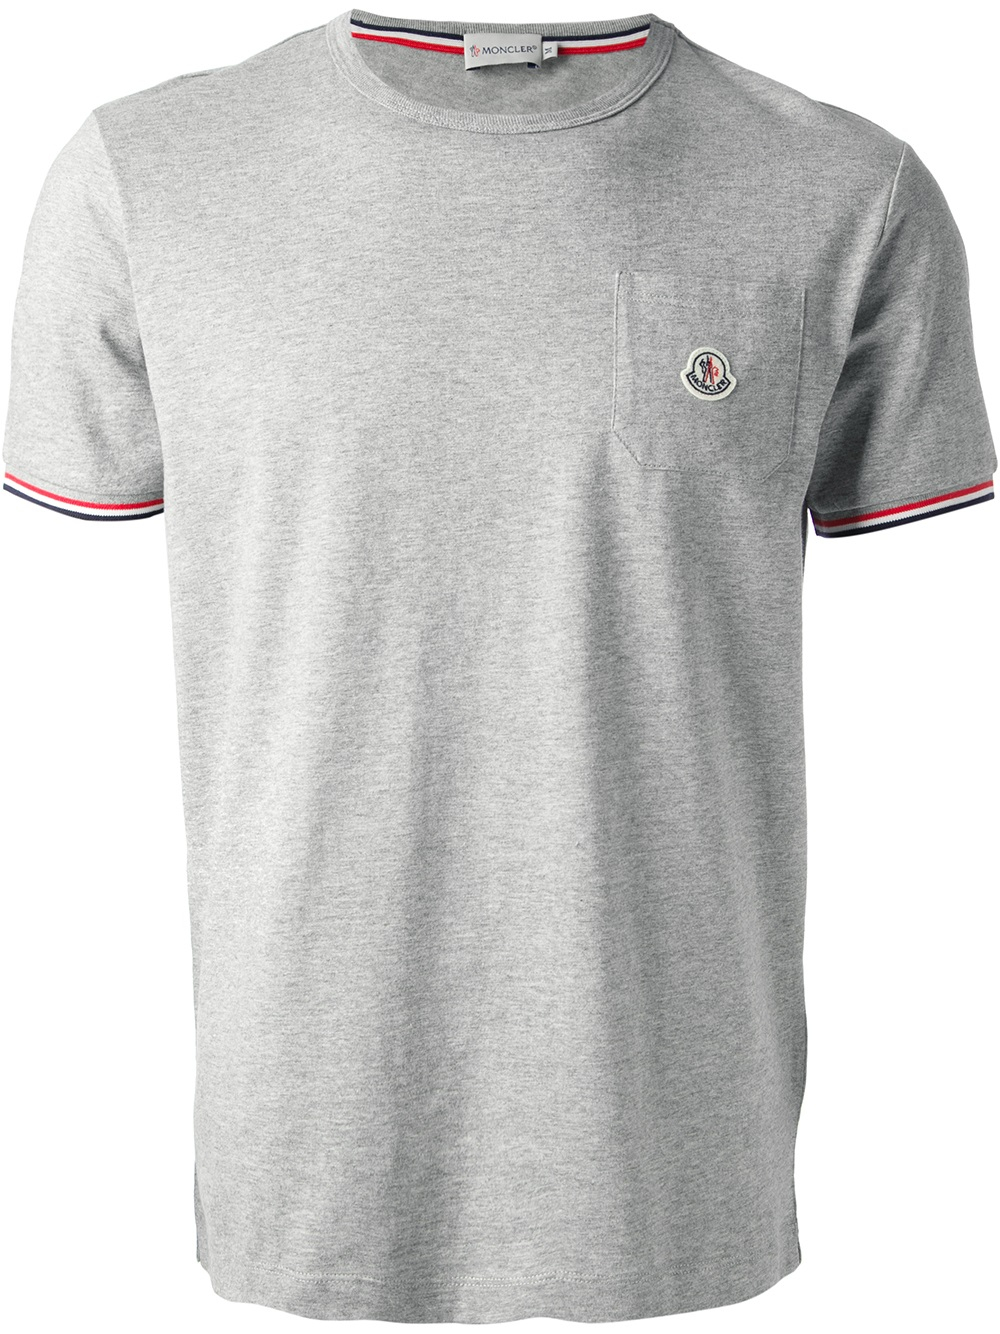 moncler classic t shirt in gray for men grey lyst. Black Bedroom Furniture Sets. Home Design Ideas